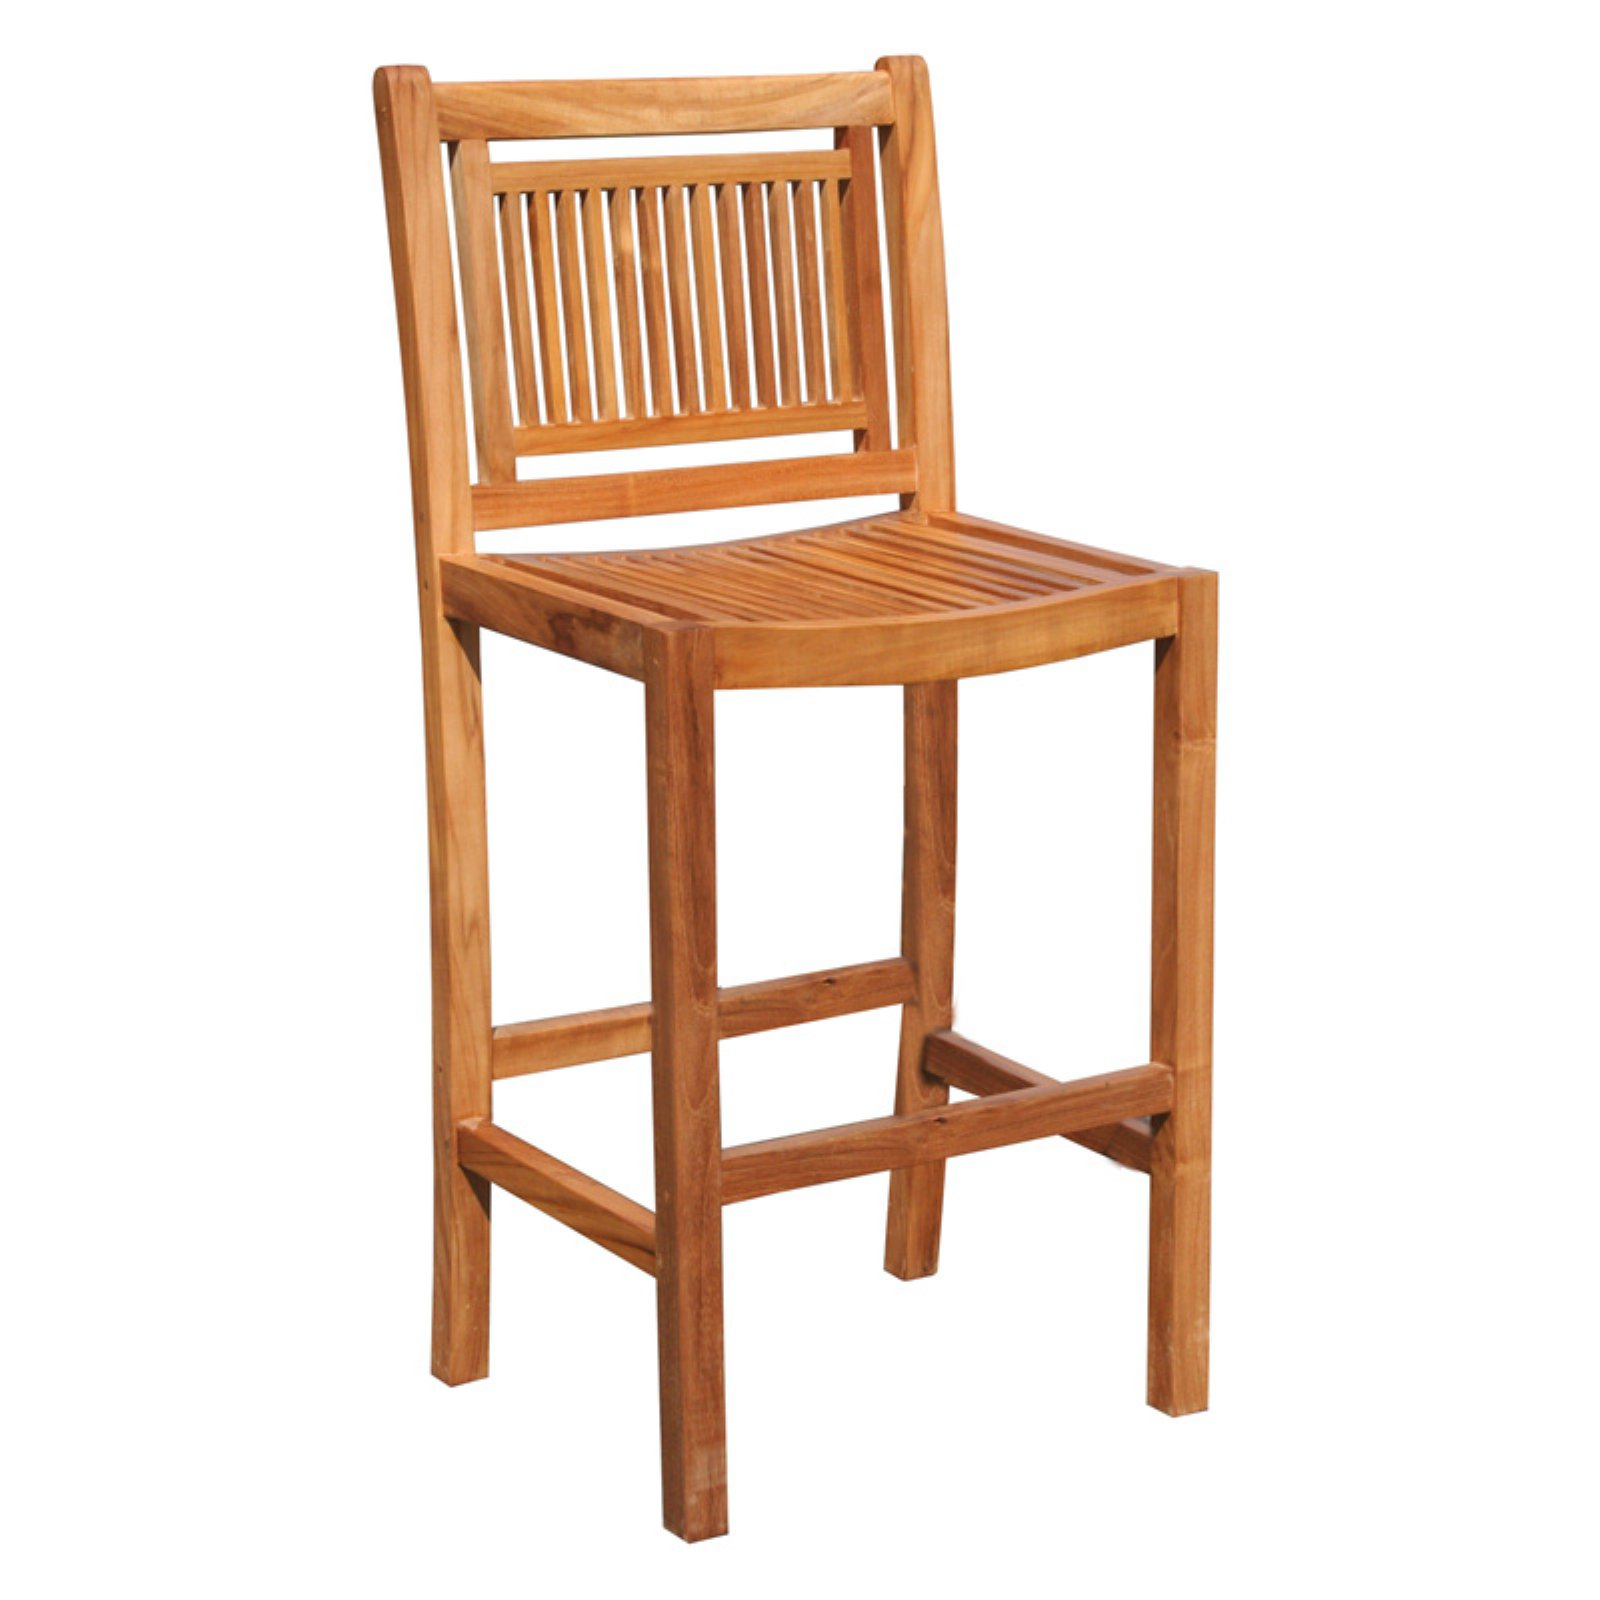 Chic Teak Maldives Teak Outdoor Barstool